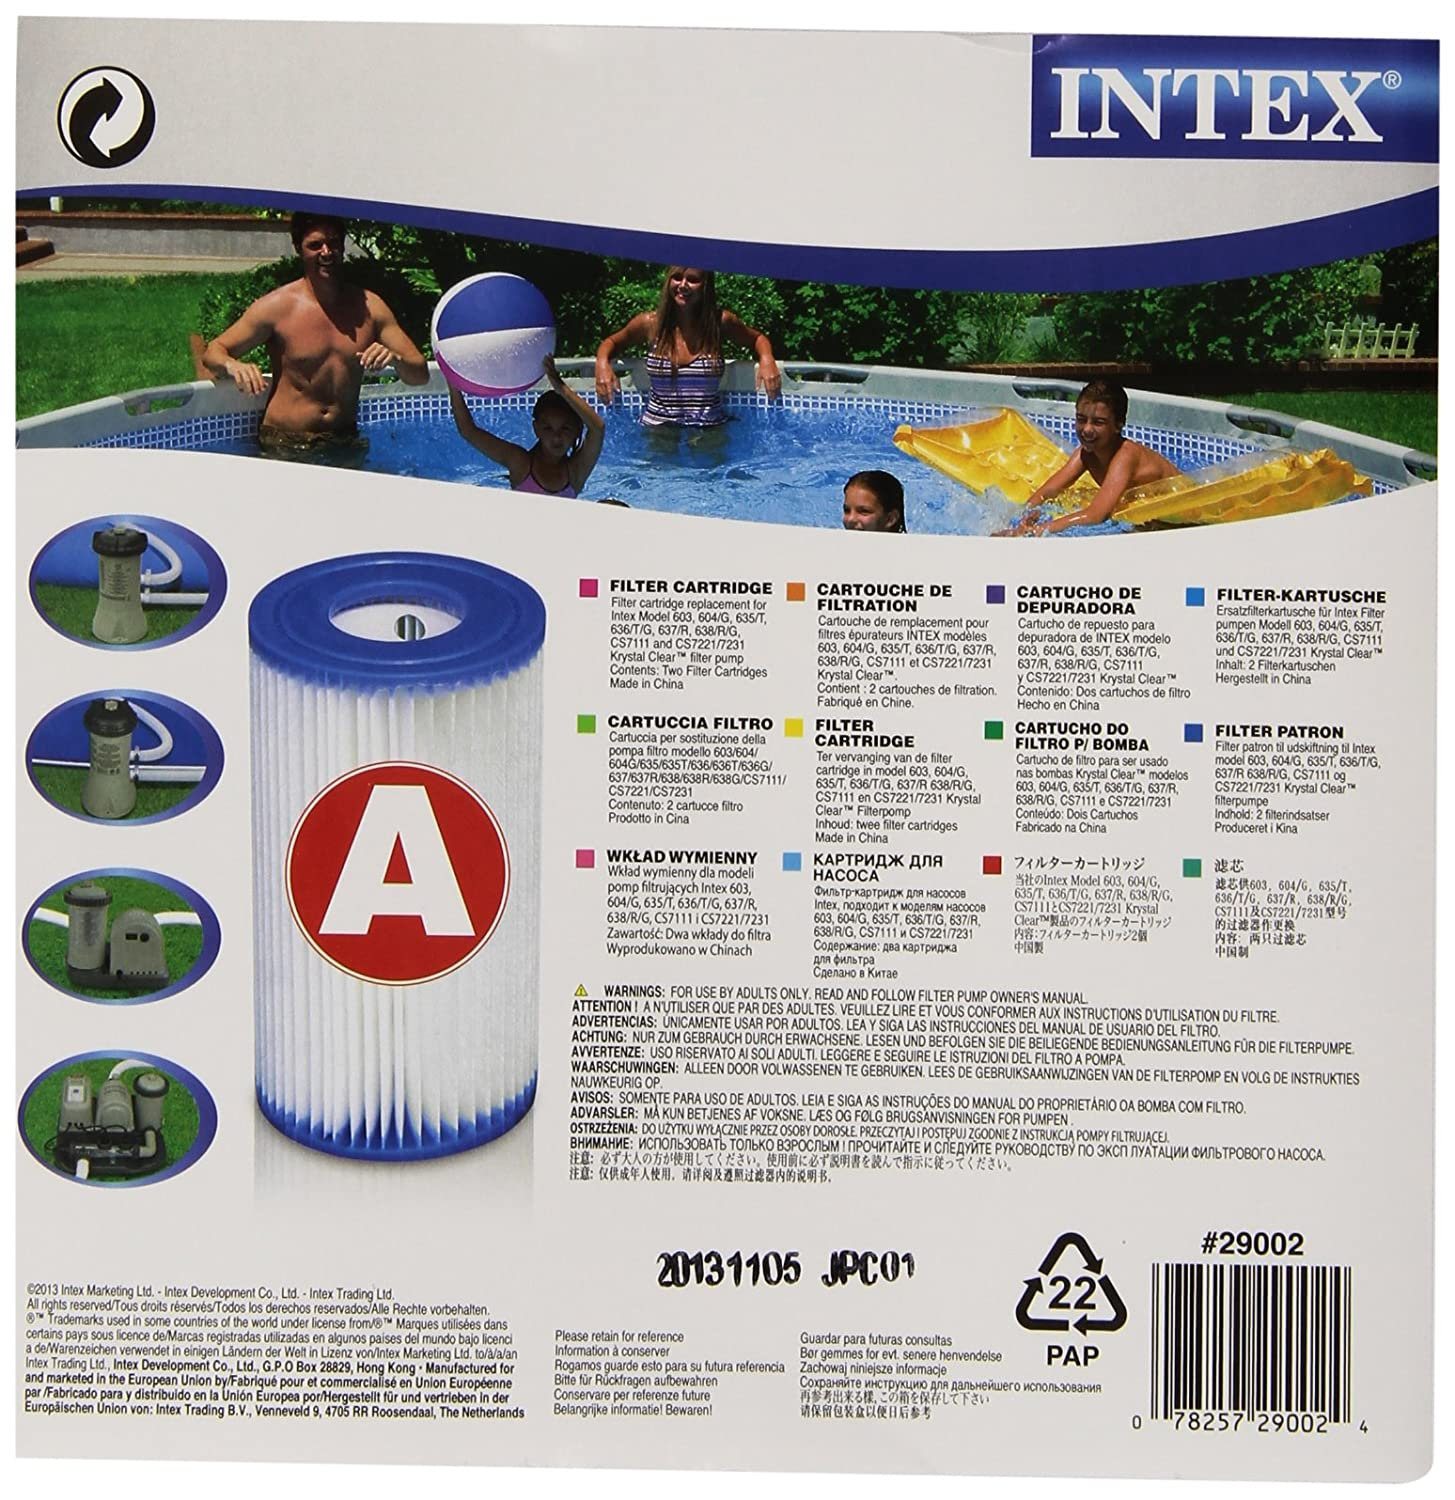 Intex 0775431 Filter Cartridge for Swimming Pool Blue 10,8 x 21,6 x 20,3 cm - set of 2 29002